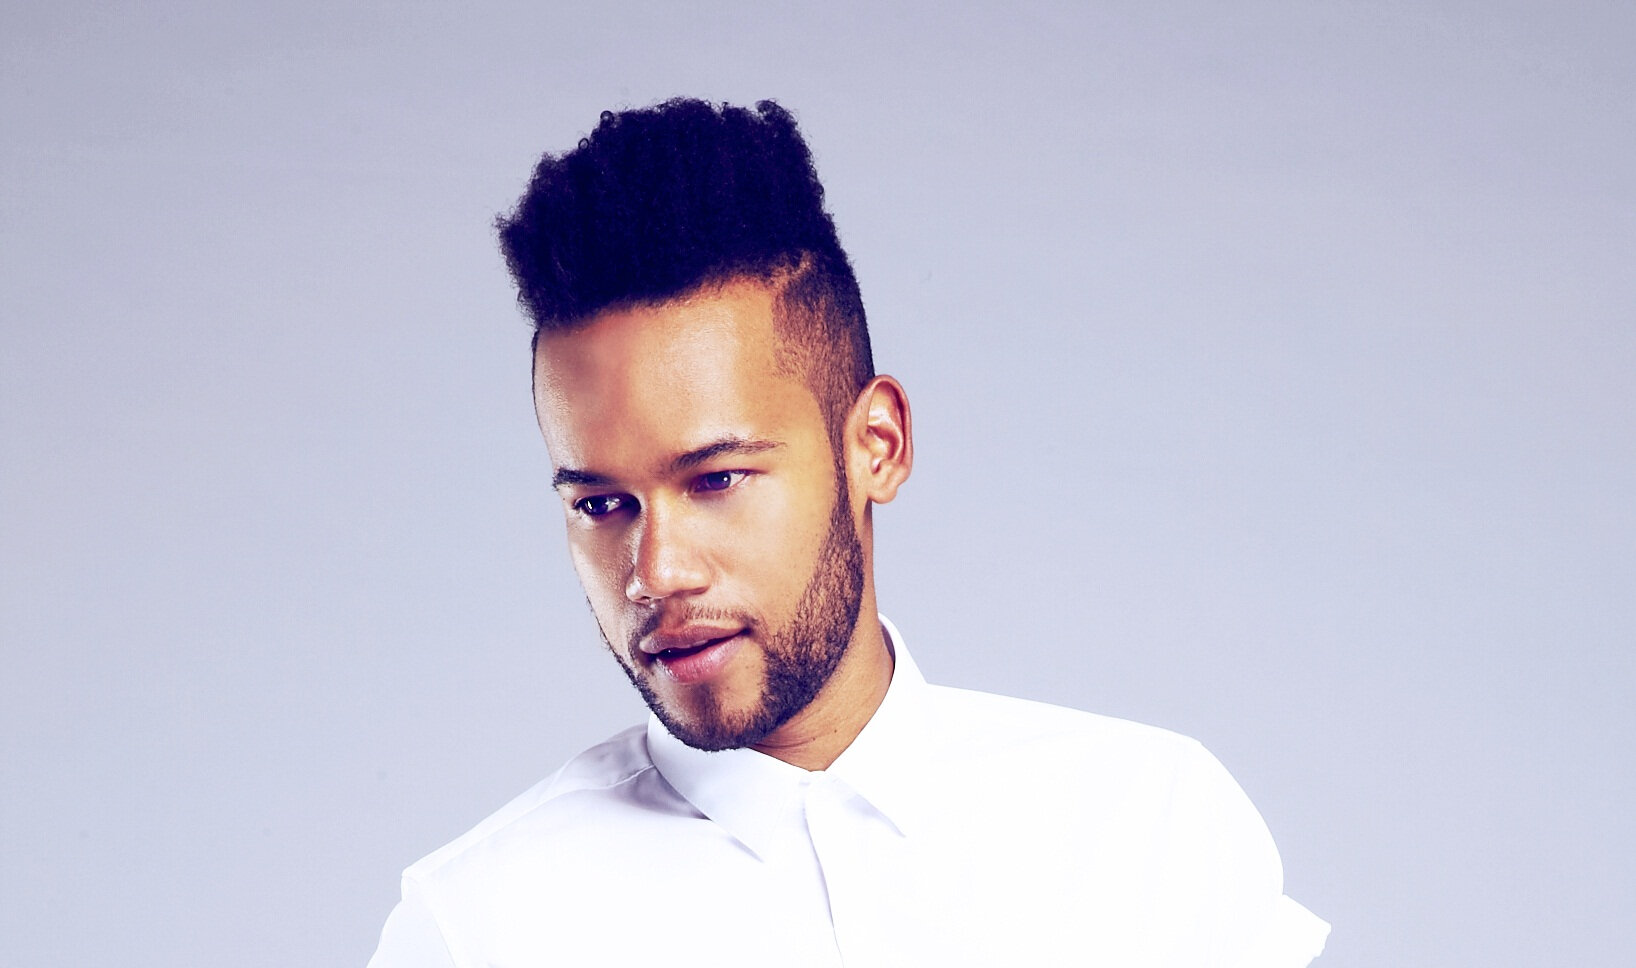 Part 1: How well do you know your mom, we asked Chad Saaiman